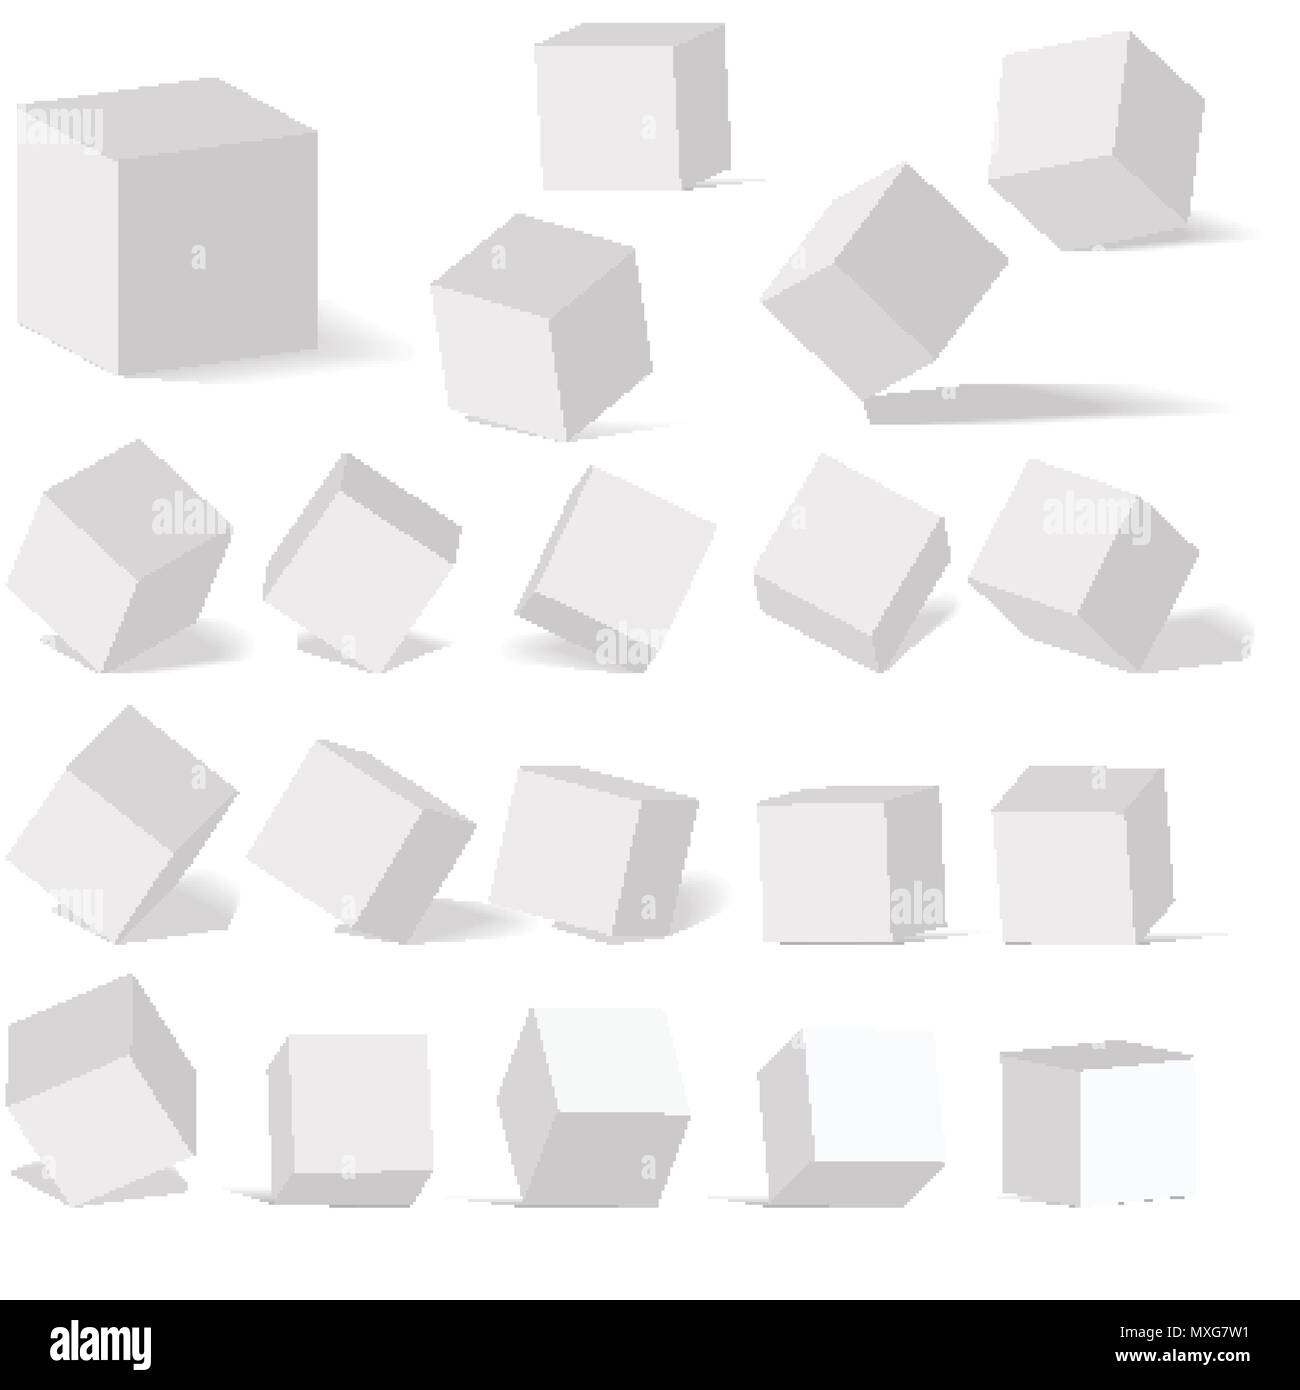 A set of cube icons with a perspective 3d cube model with a